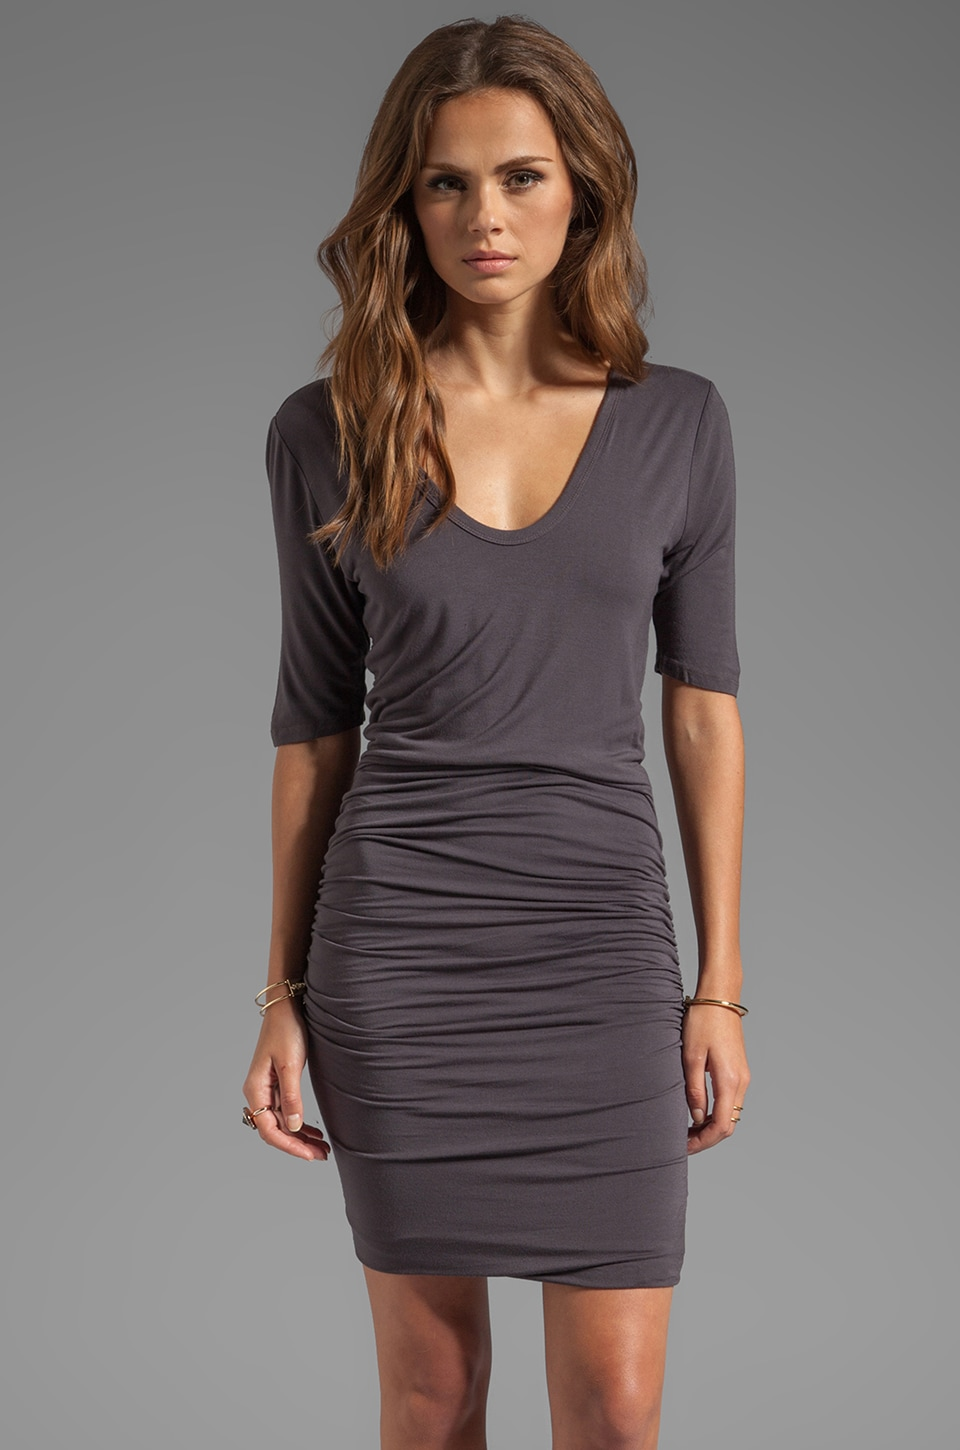 Bobi Ruched Scoop Neck Dress in Empire